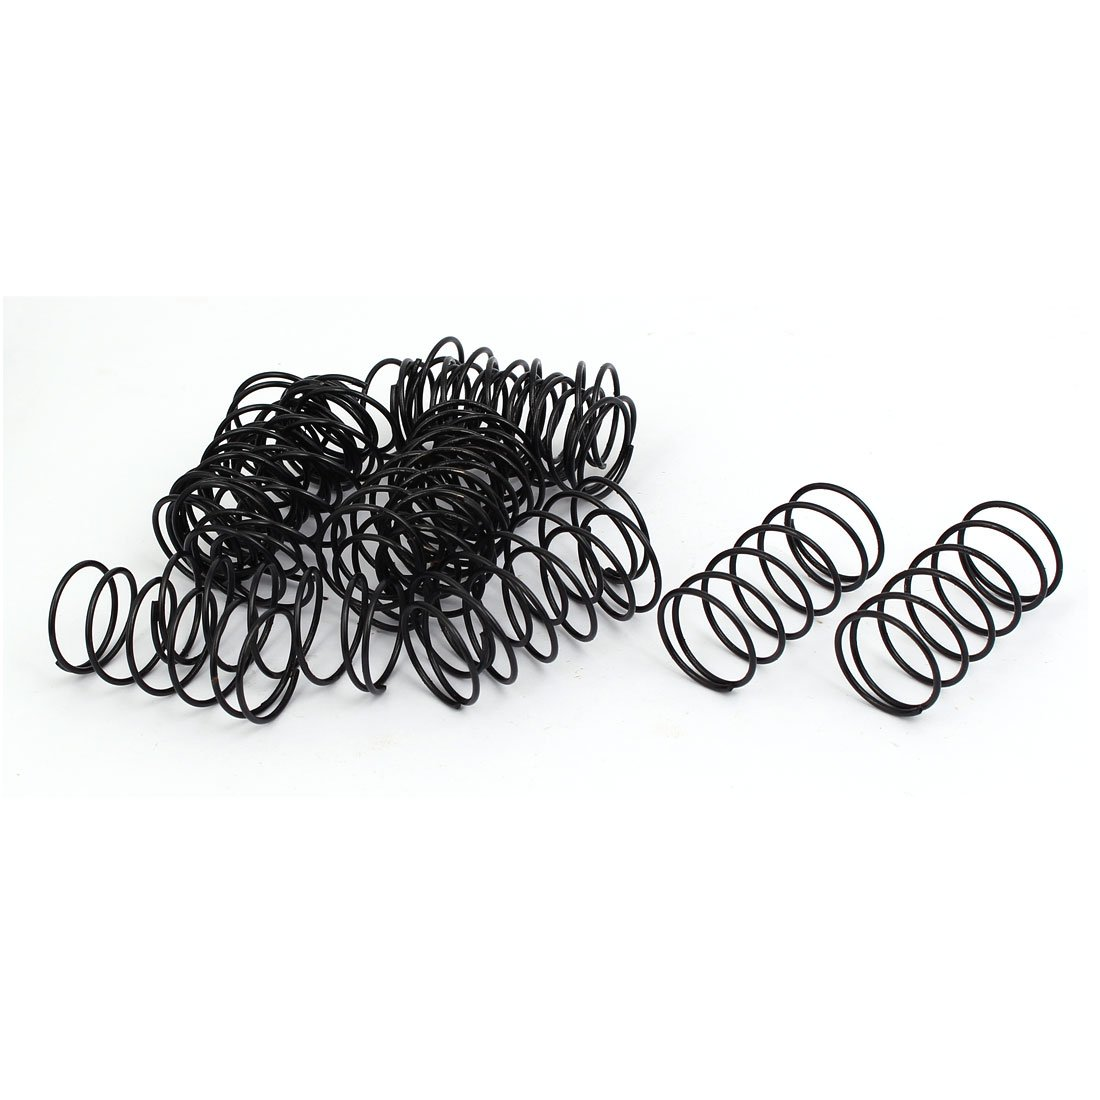 uxcell Compression Spring - 1.2mm Wire Dia, 20mm OD, 40mm Free Length Spring Steel Extension Spring,Black,20Pcs